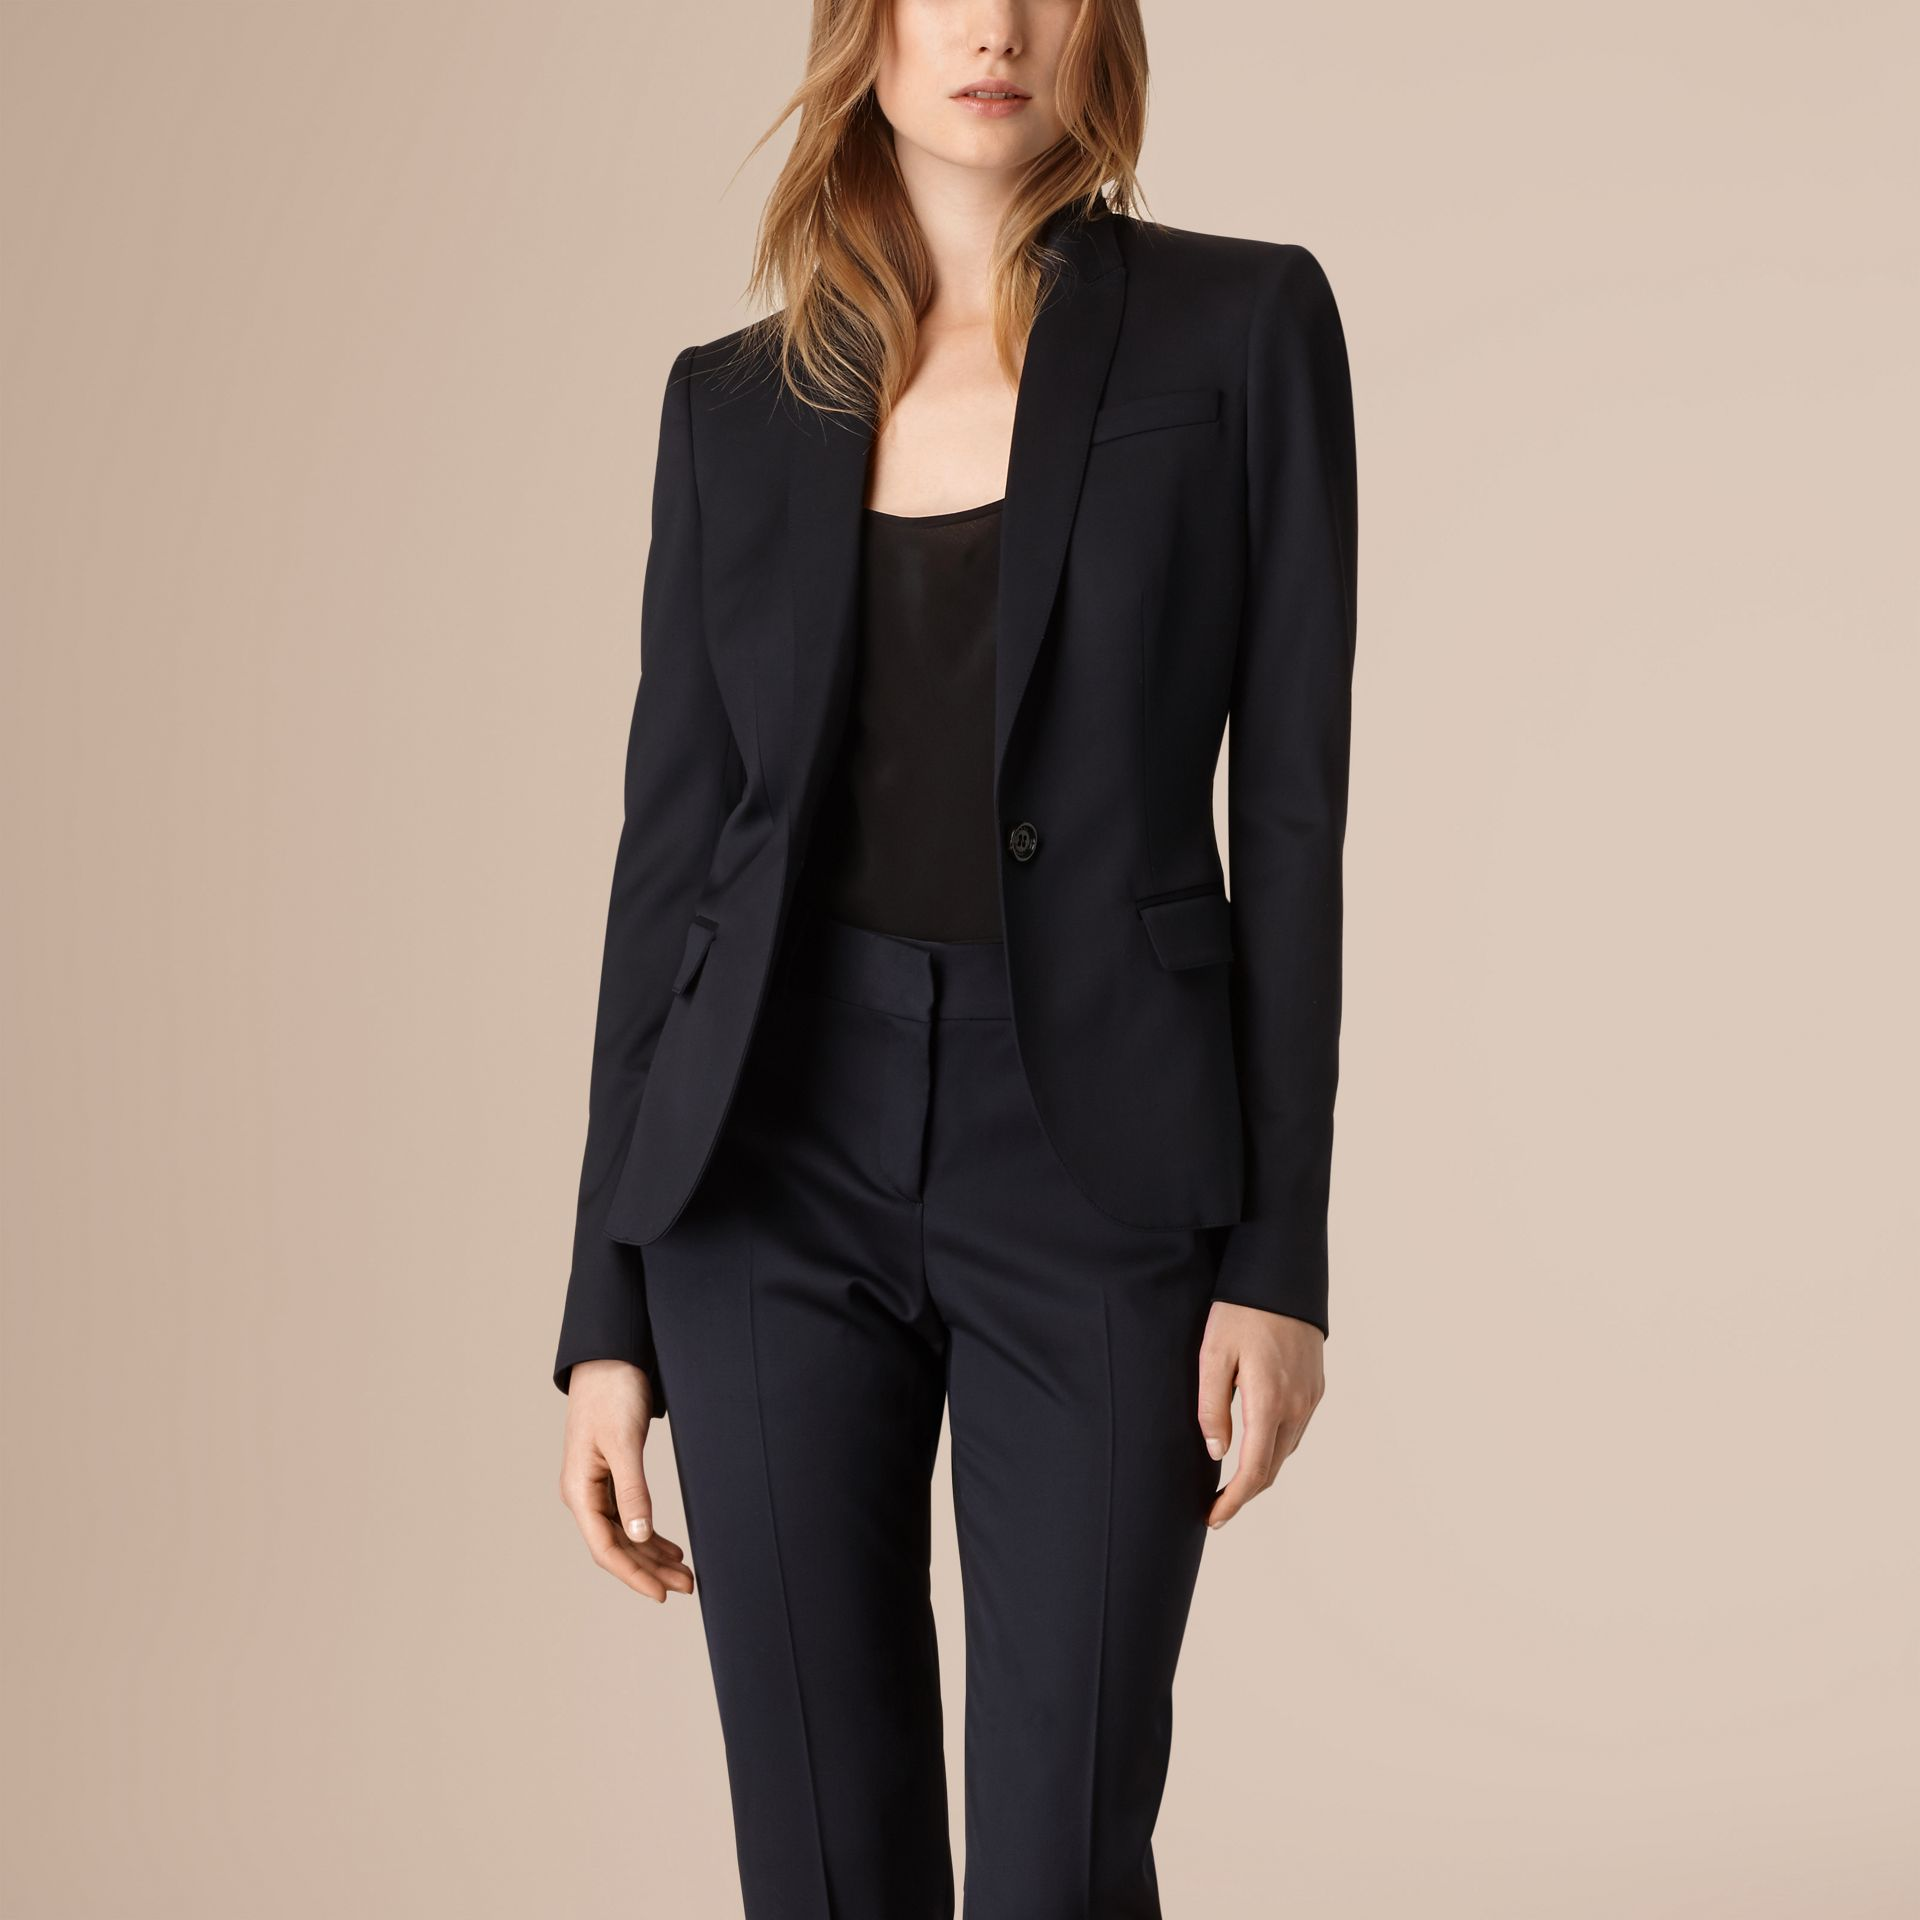 Ink Wool Blend Tuxedo Jacket - gallery image 1